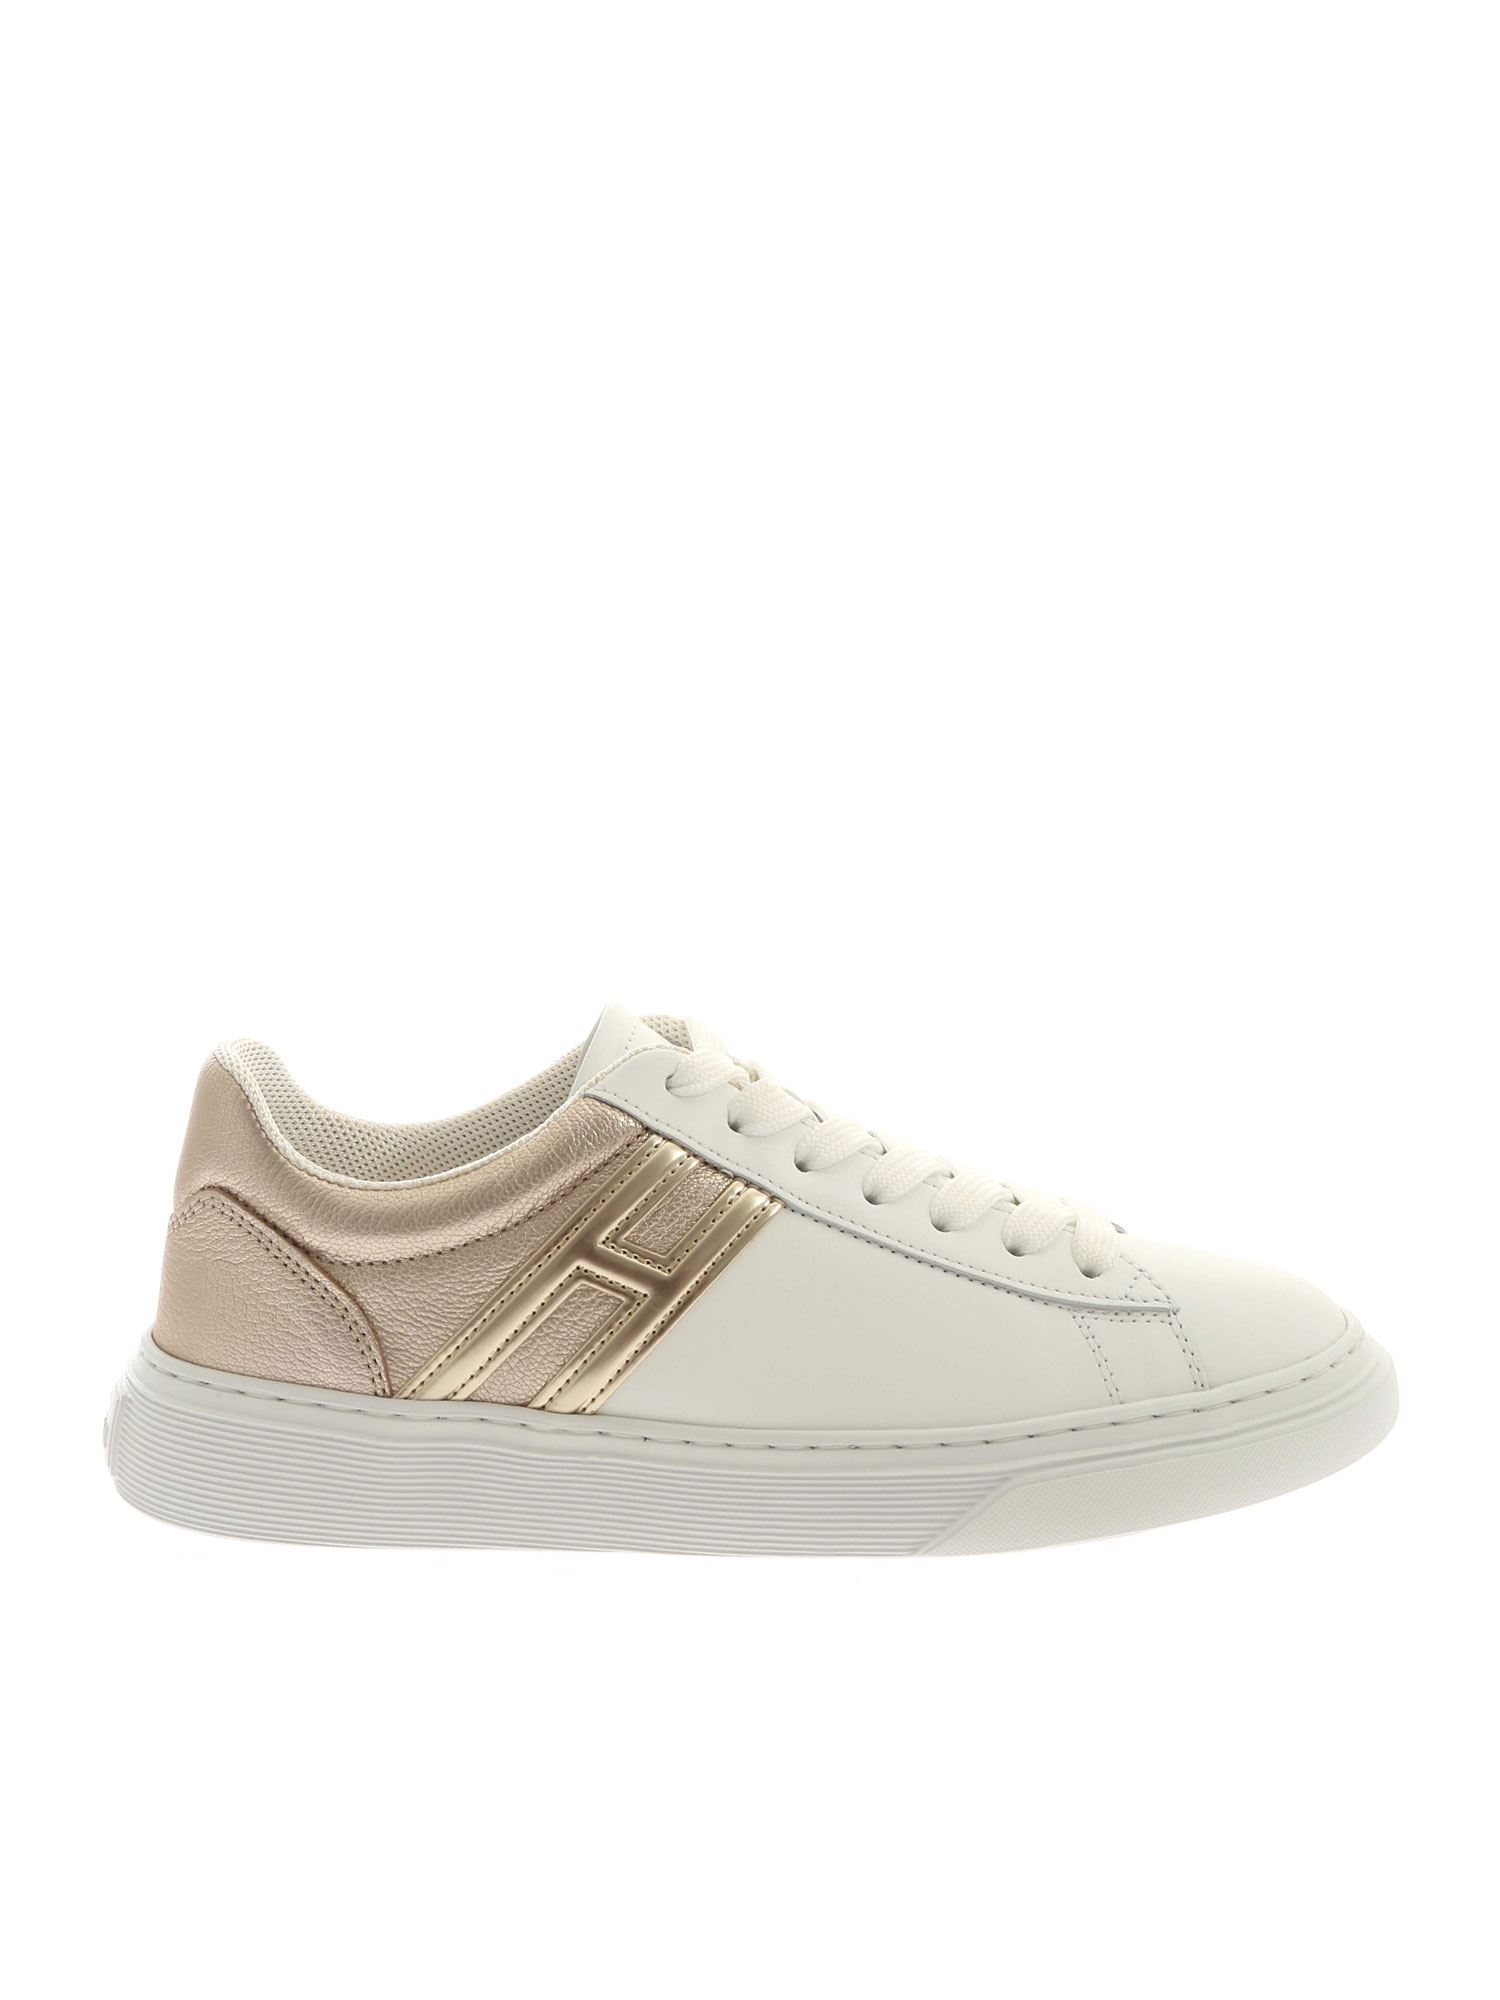 Shop Hogan H365 Sneakers In White And Platinum Color